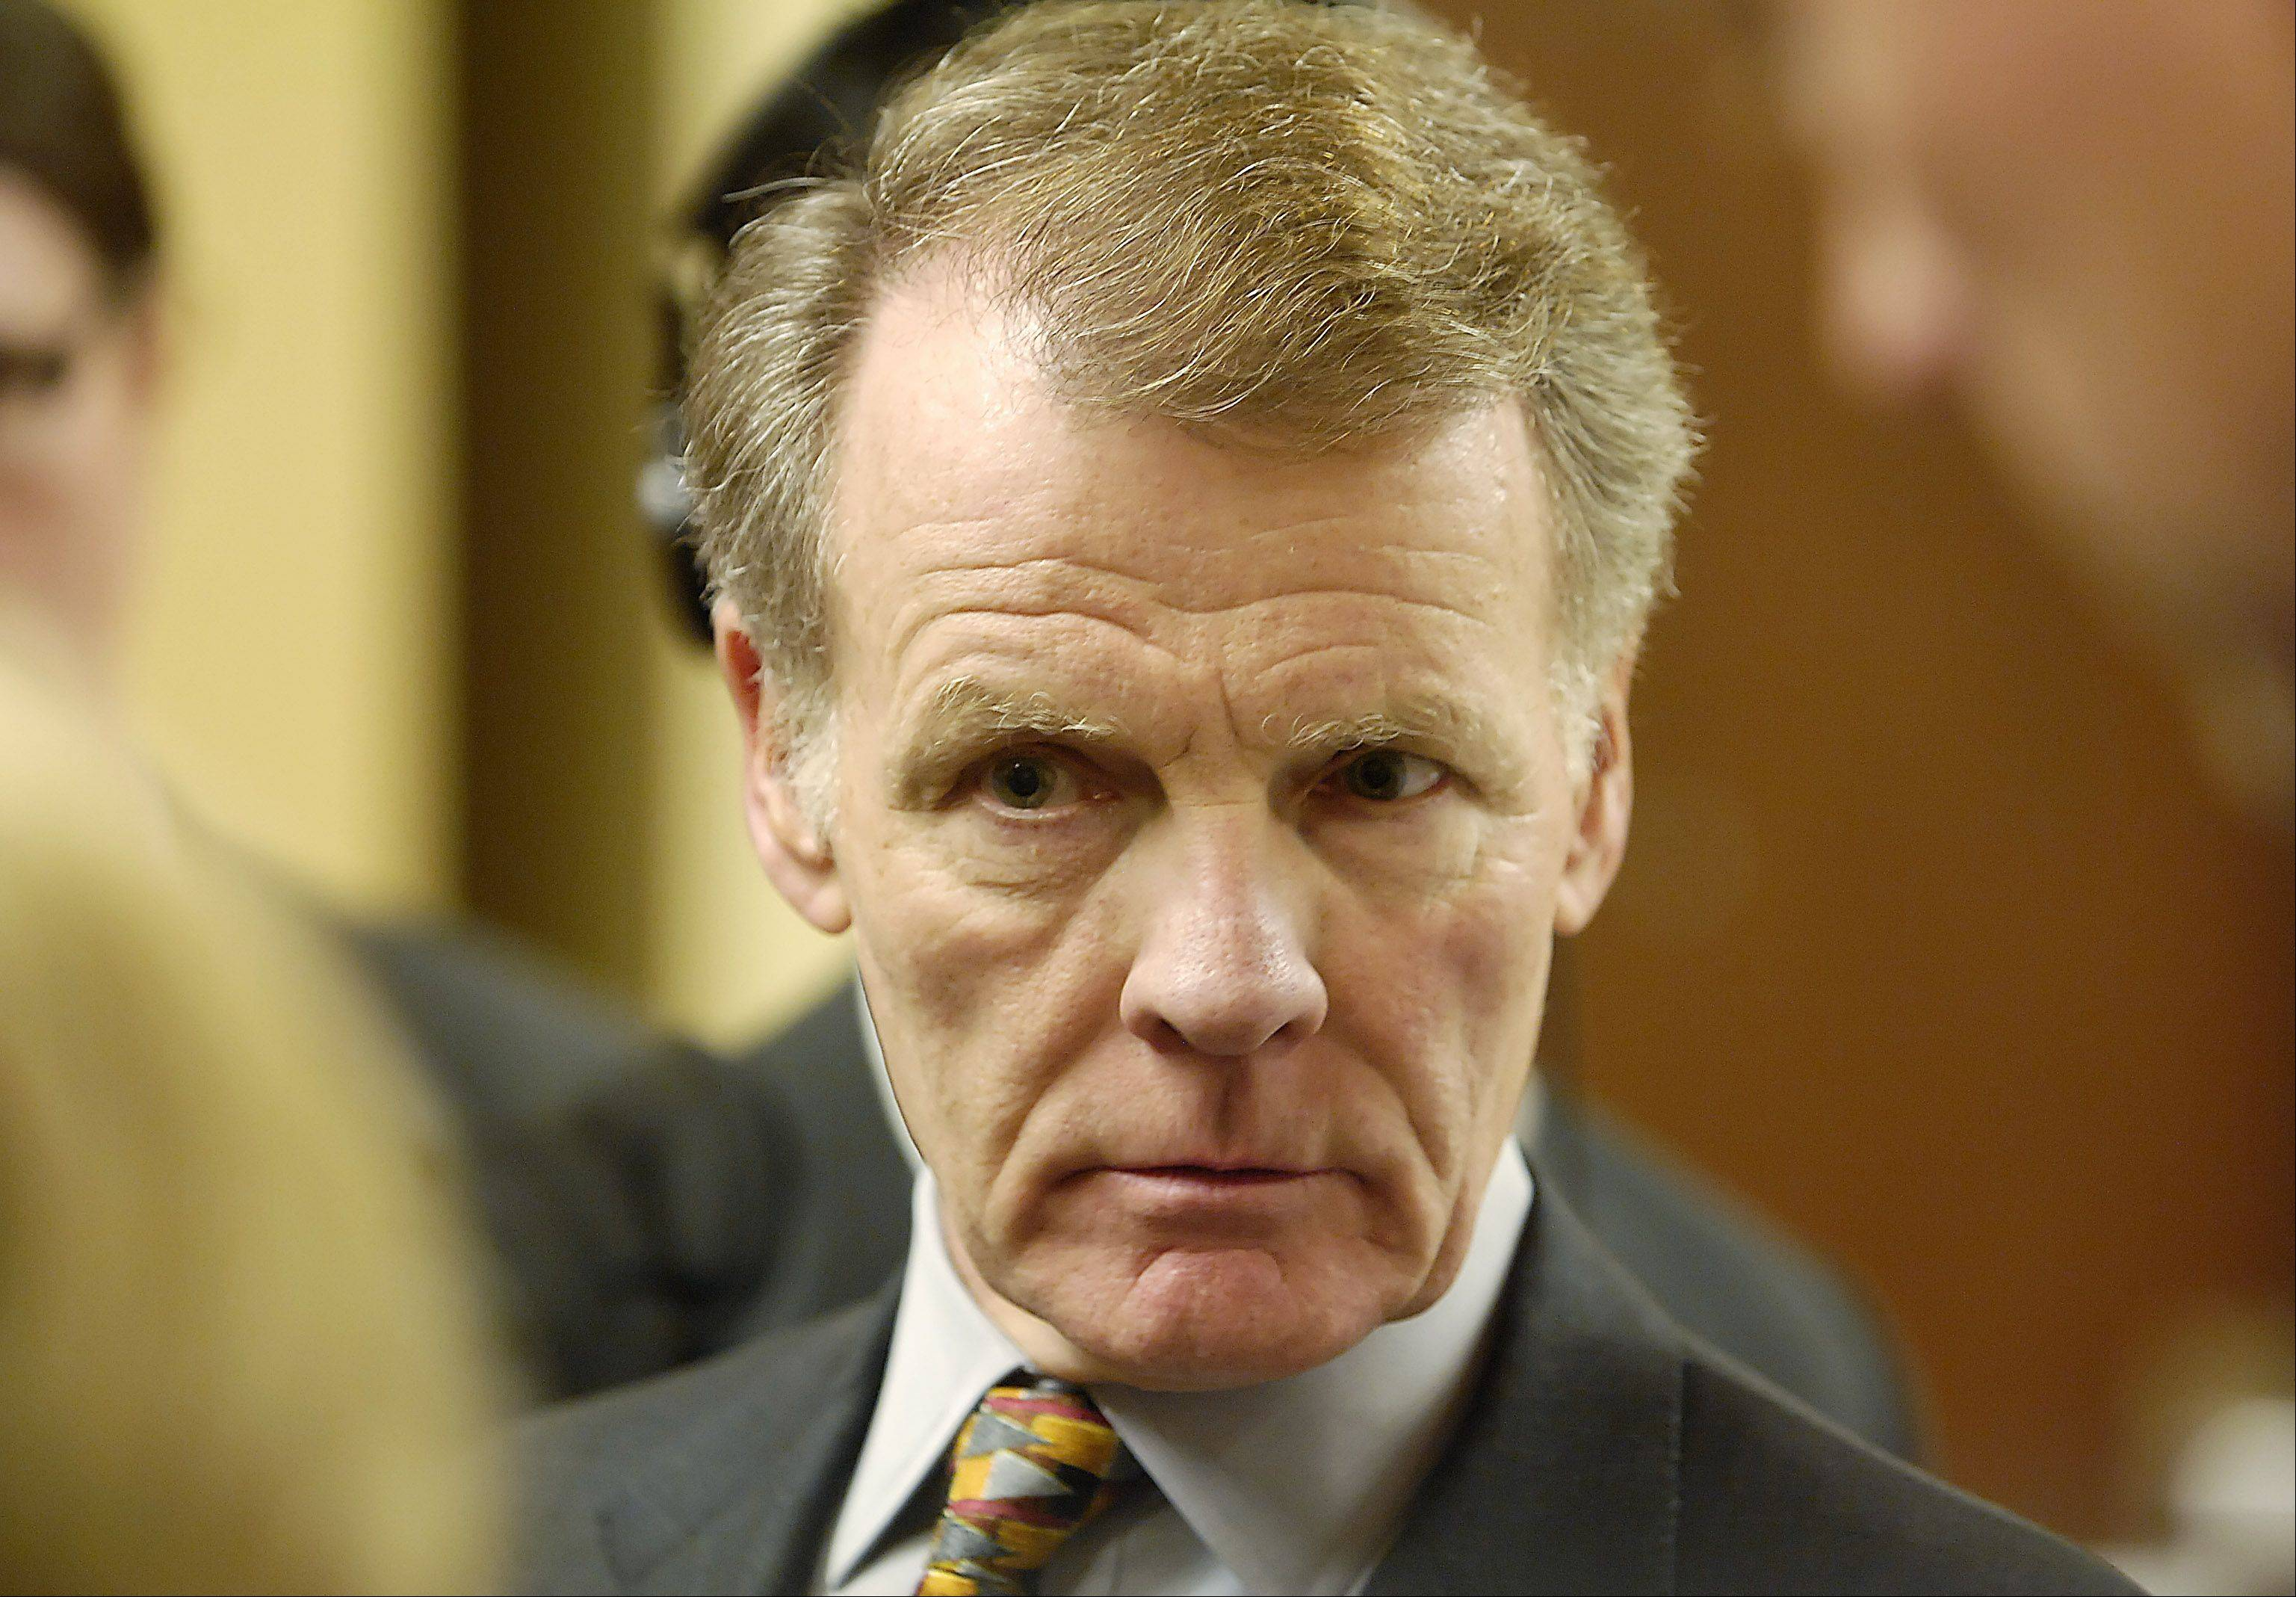 Illinois House Speaker Michael Madigan has sharply criticized corporate requests for tax breaks and says he�s unlikely to support deals for companies that pay little in taxes.